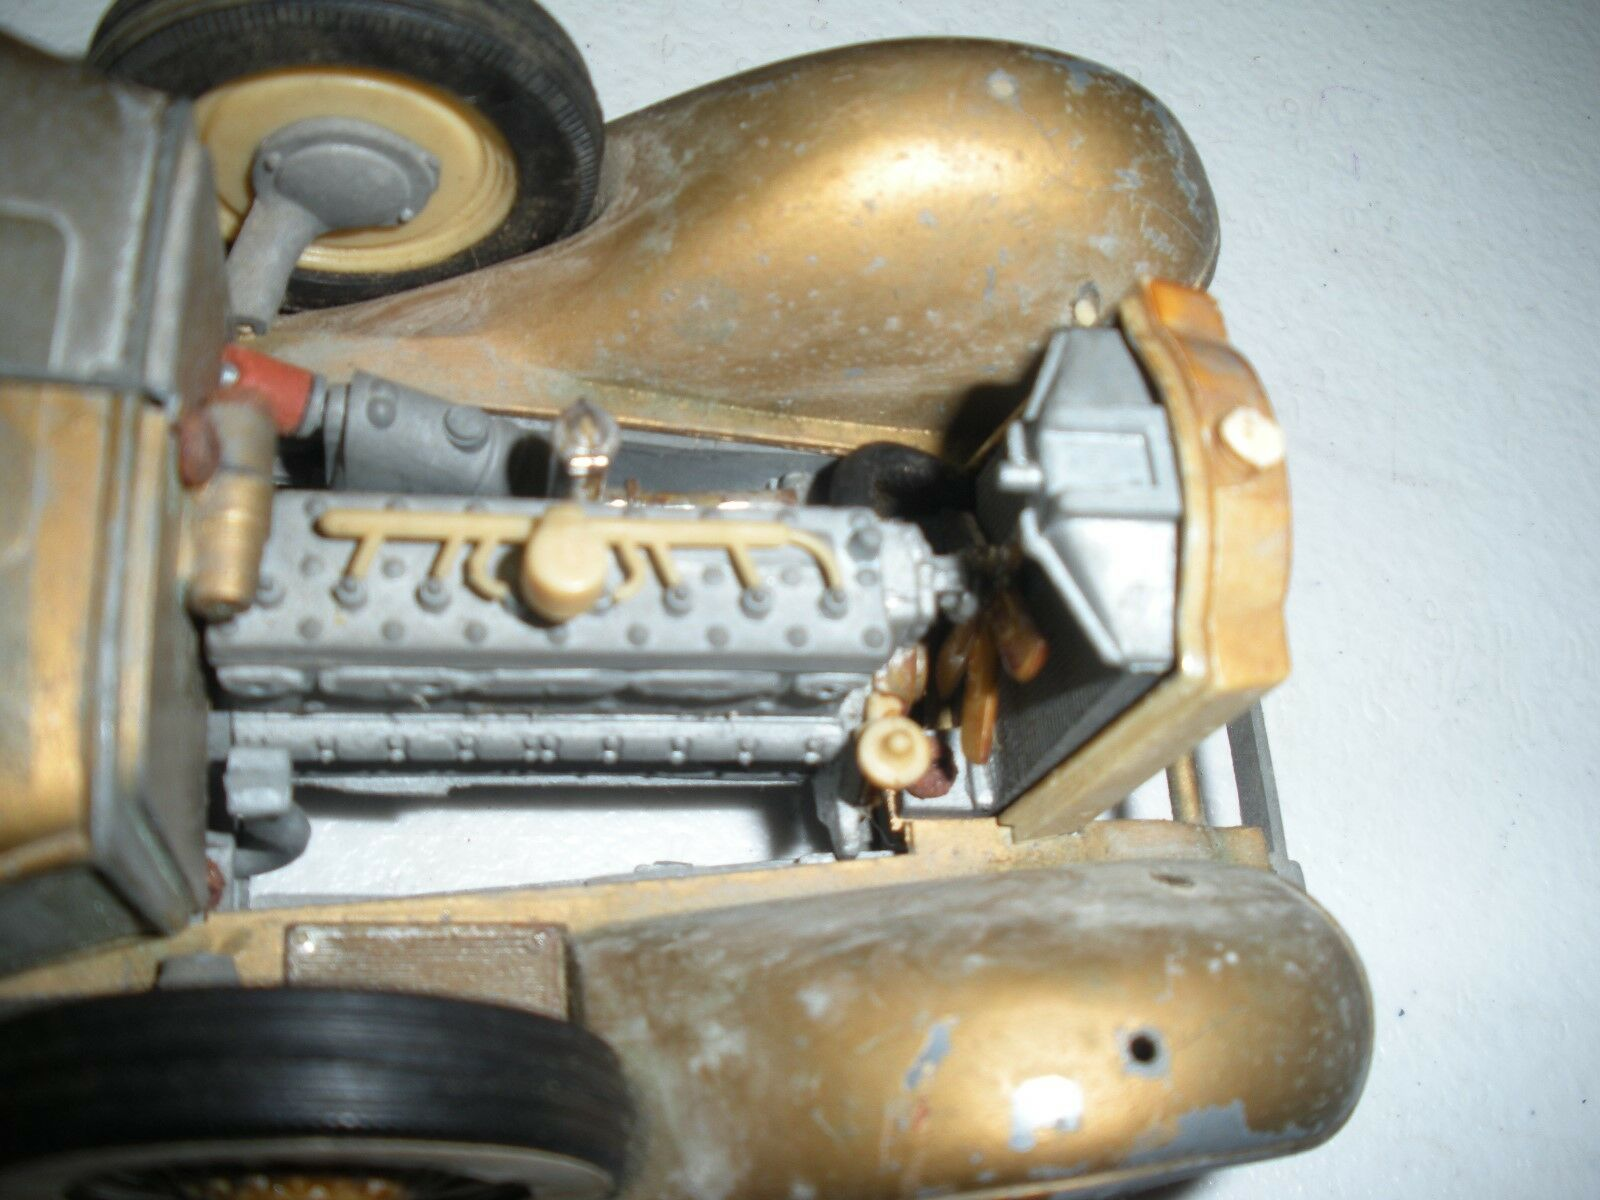 Hubley Touring Car gold metal Body 9  Long    Made In U.S.A. Nice Lancaster P.A, d4e23b